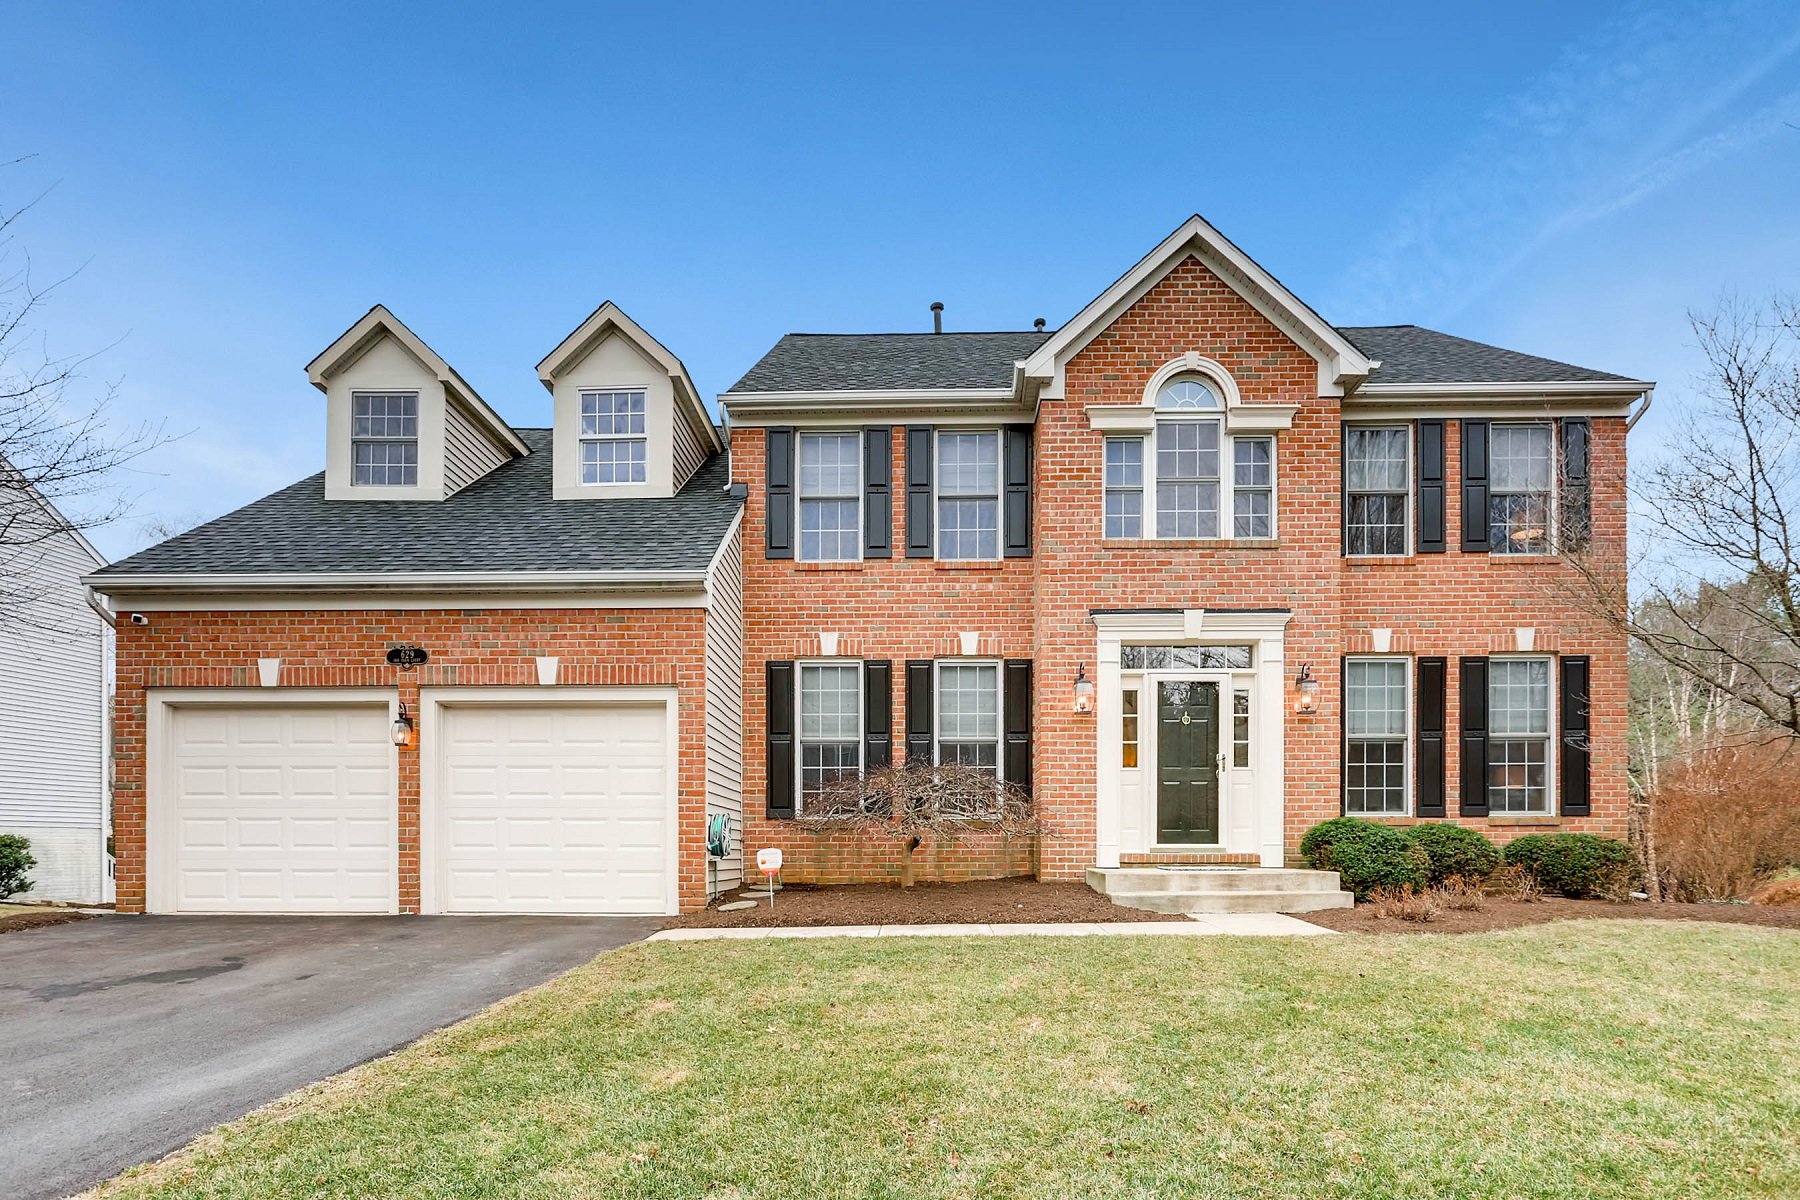 Single Family Home for Sale at The Oaks at Five FArms 629 Oak Farm Court, Lutherville Timonium, Maryland, 21093 United States